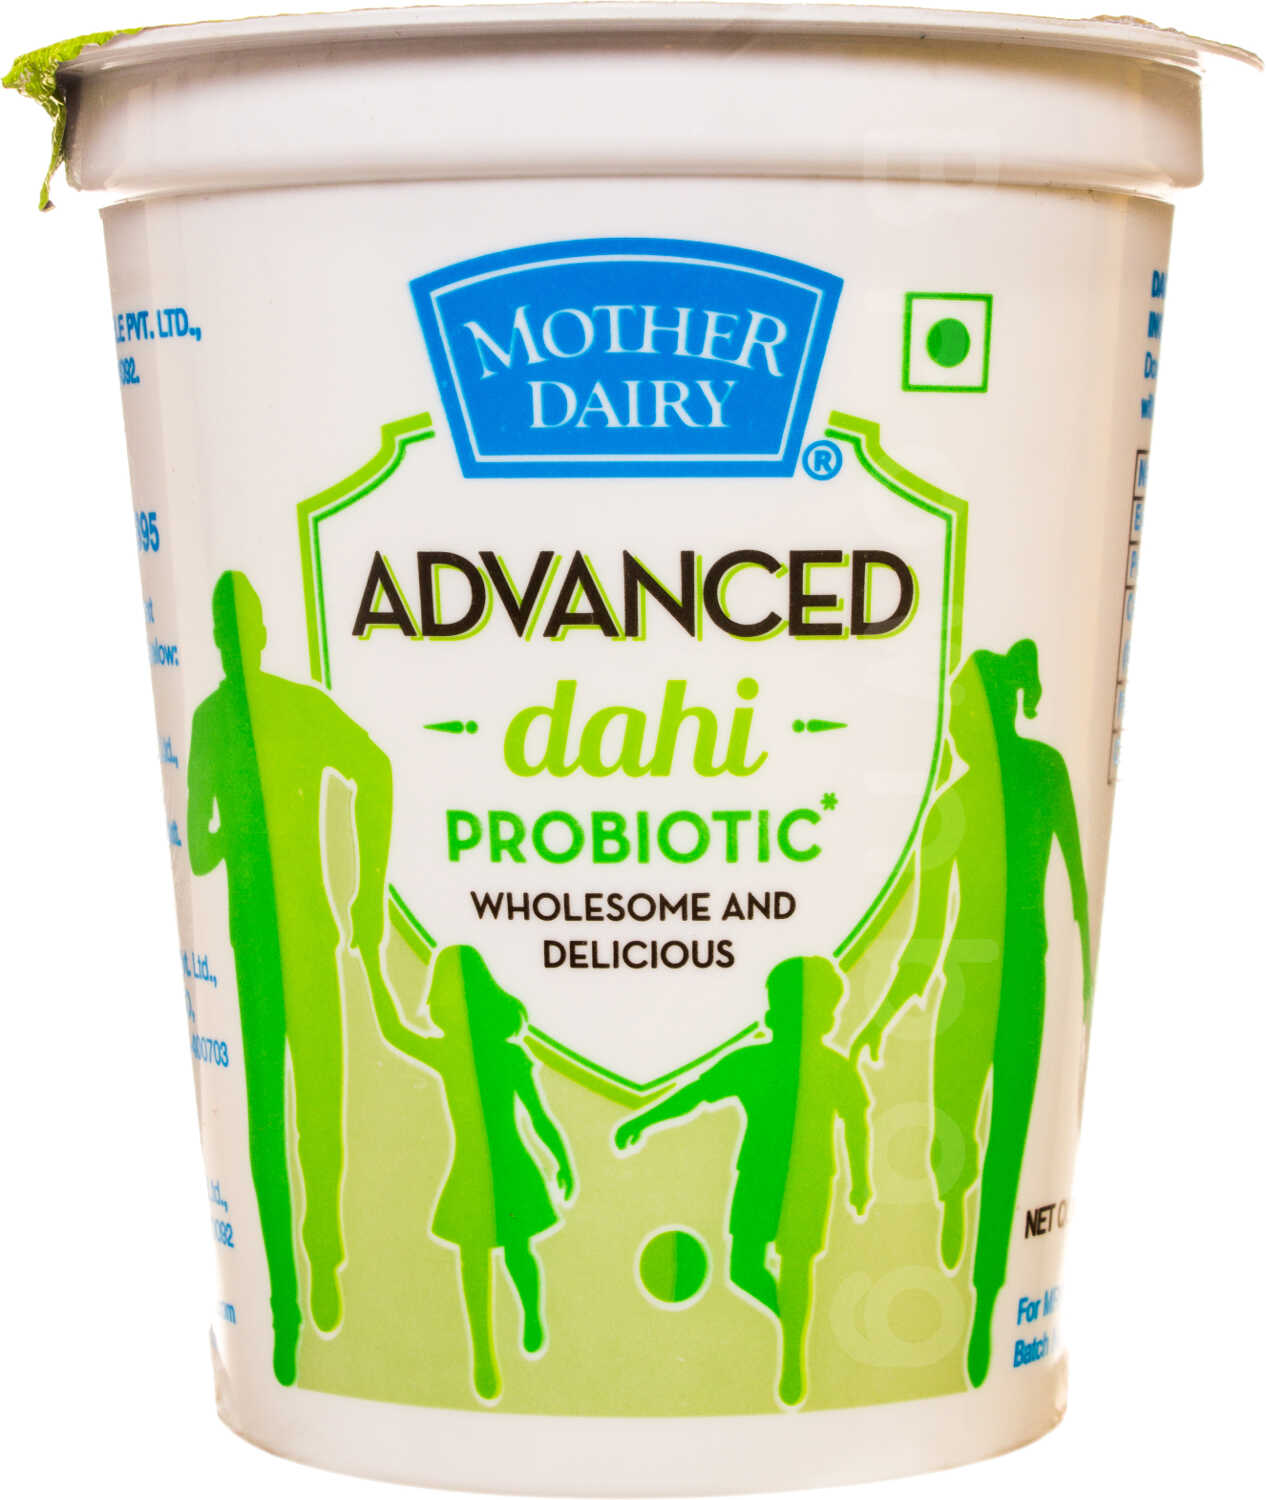 Mother Dairy Advanced Probiotic Dahi